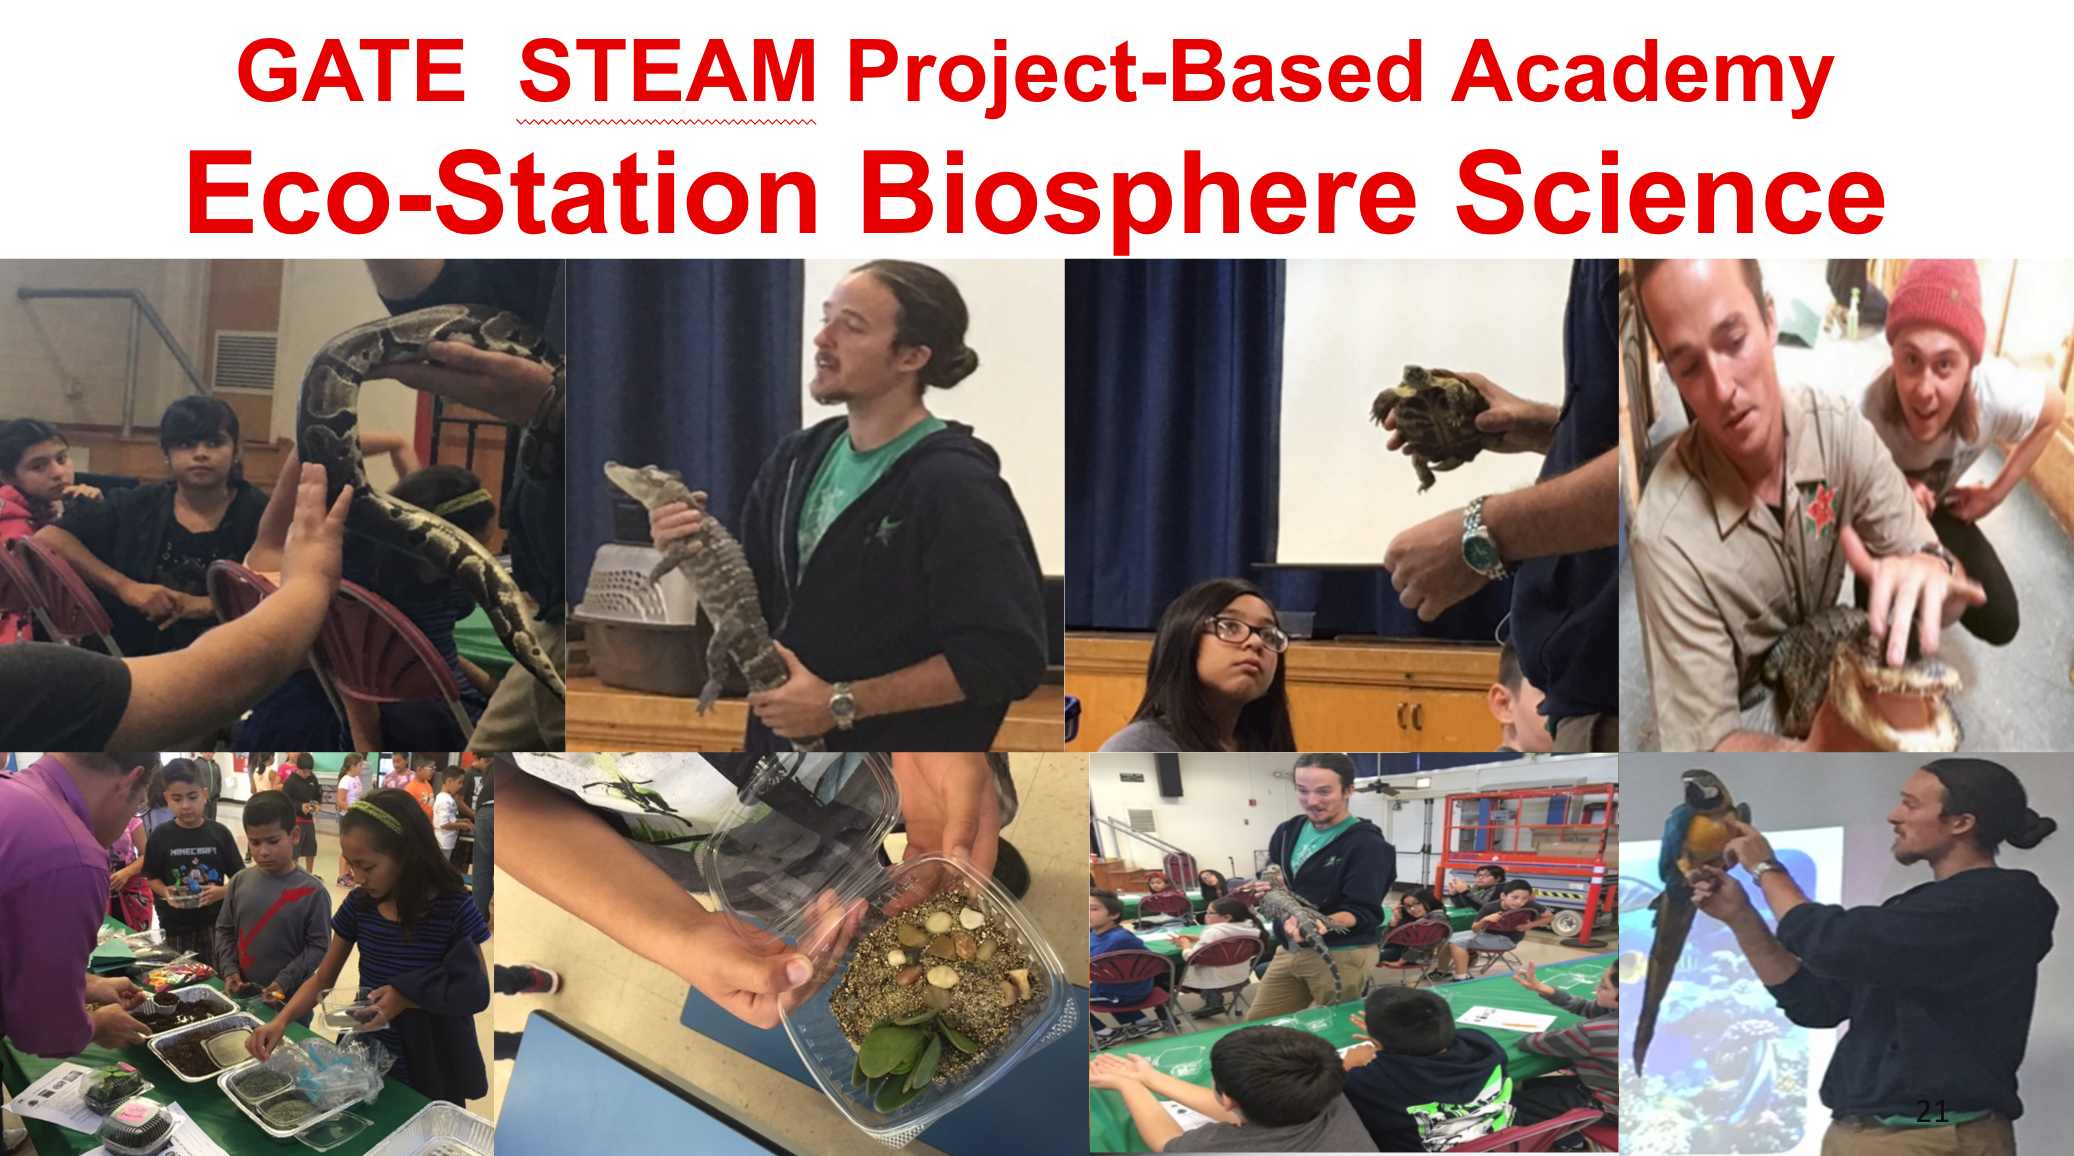 Project-based Academy showing eco-station biosphere science.